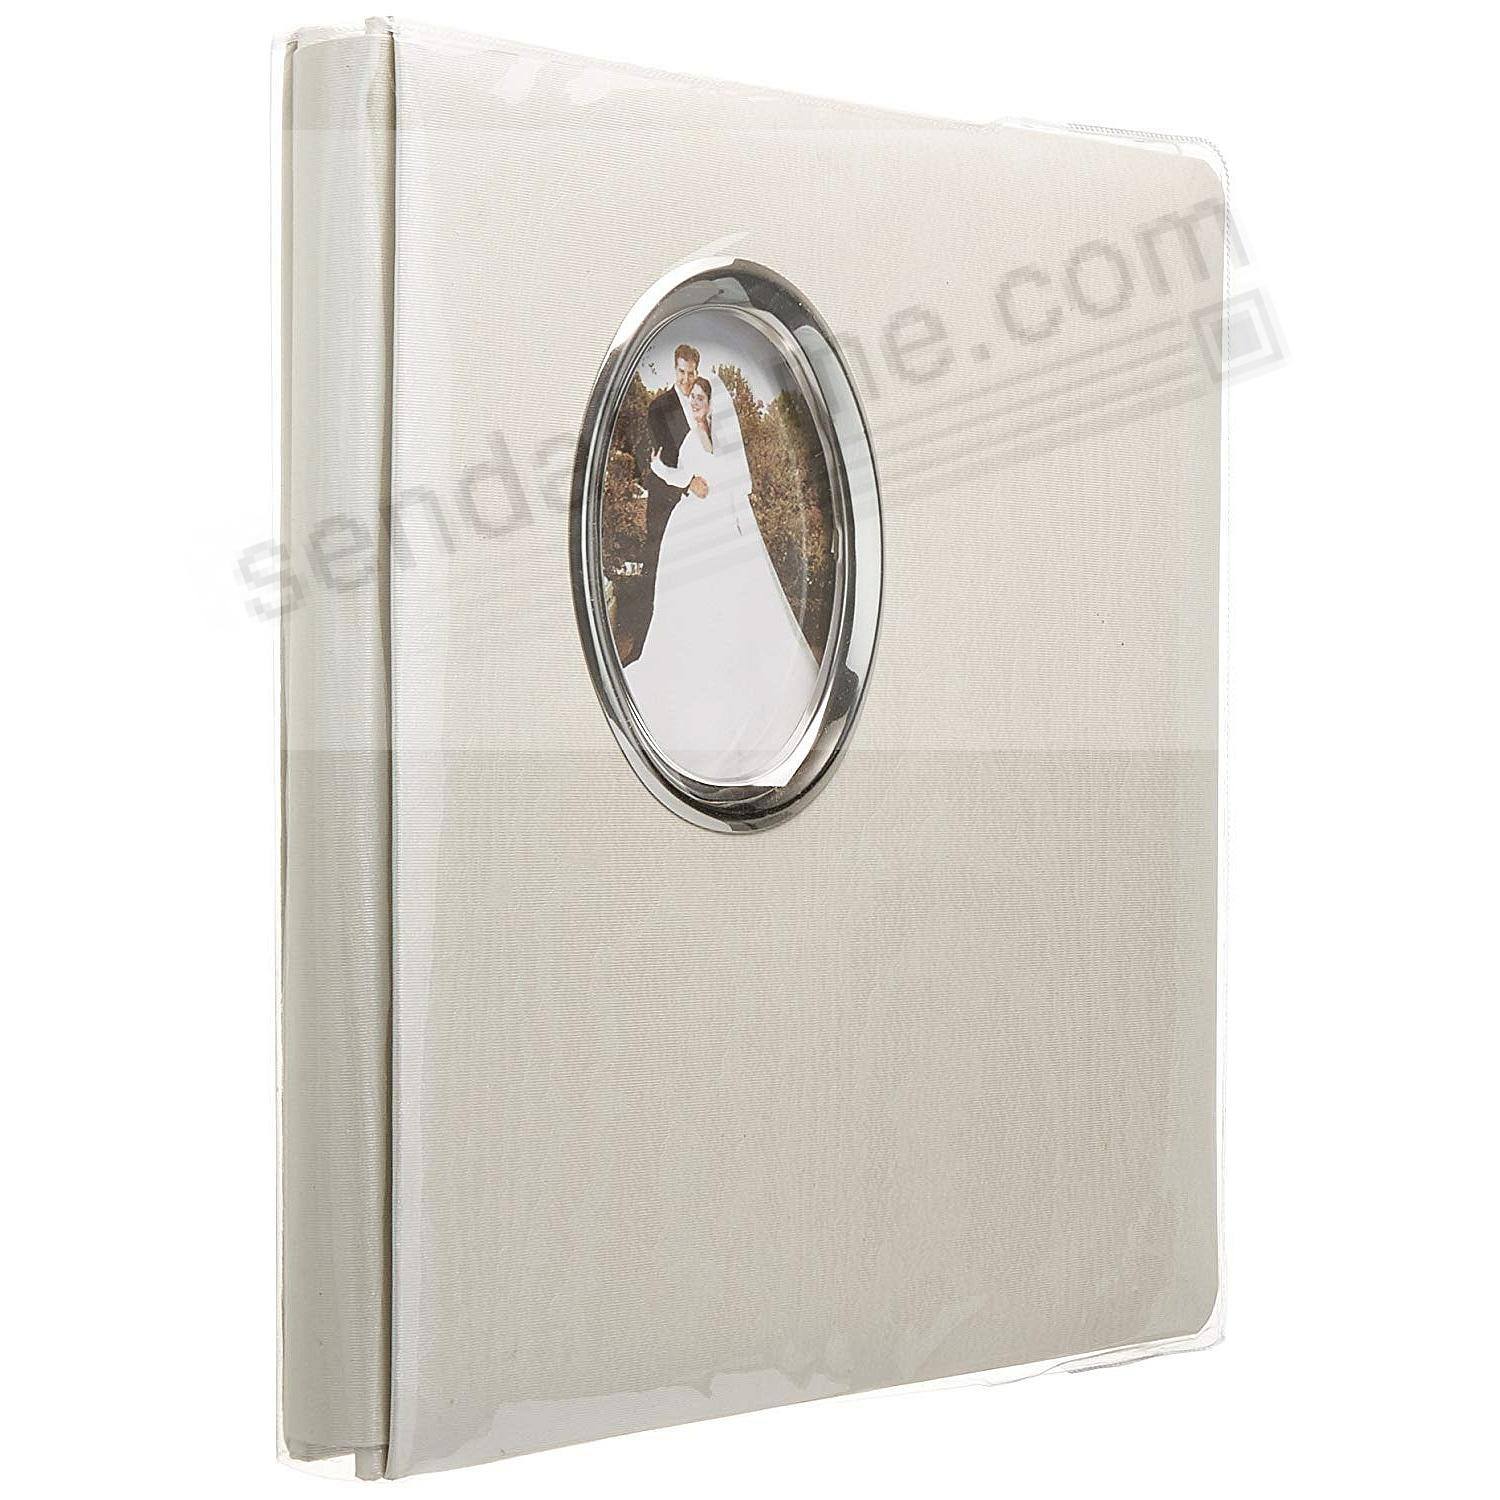 Silver Accent Wedding Post-Bound pocket album for 5x7 + 8x10 prints w/scrapbook pages by Pioneer®